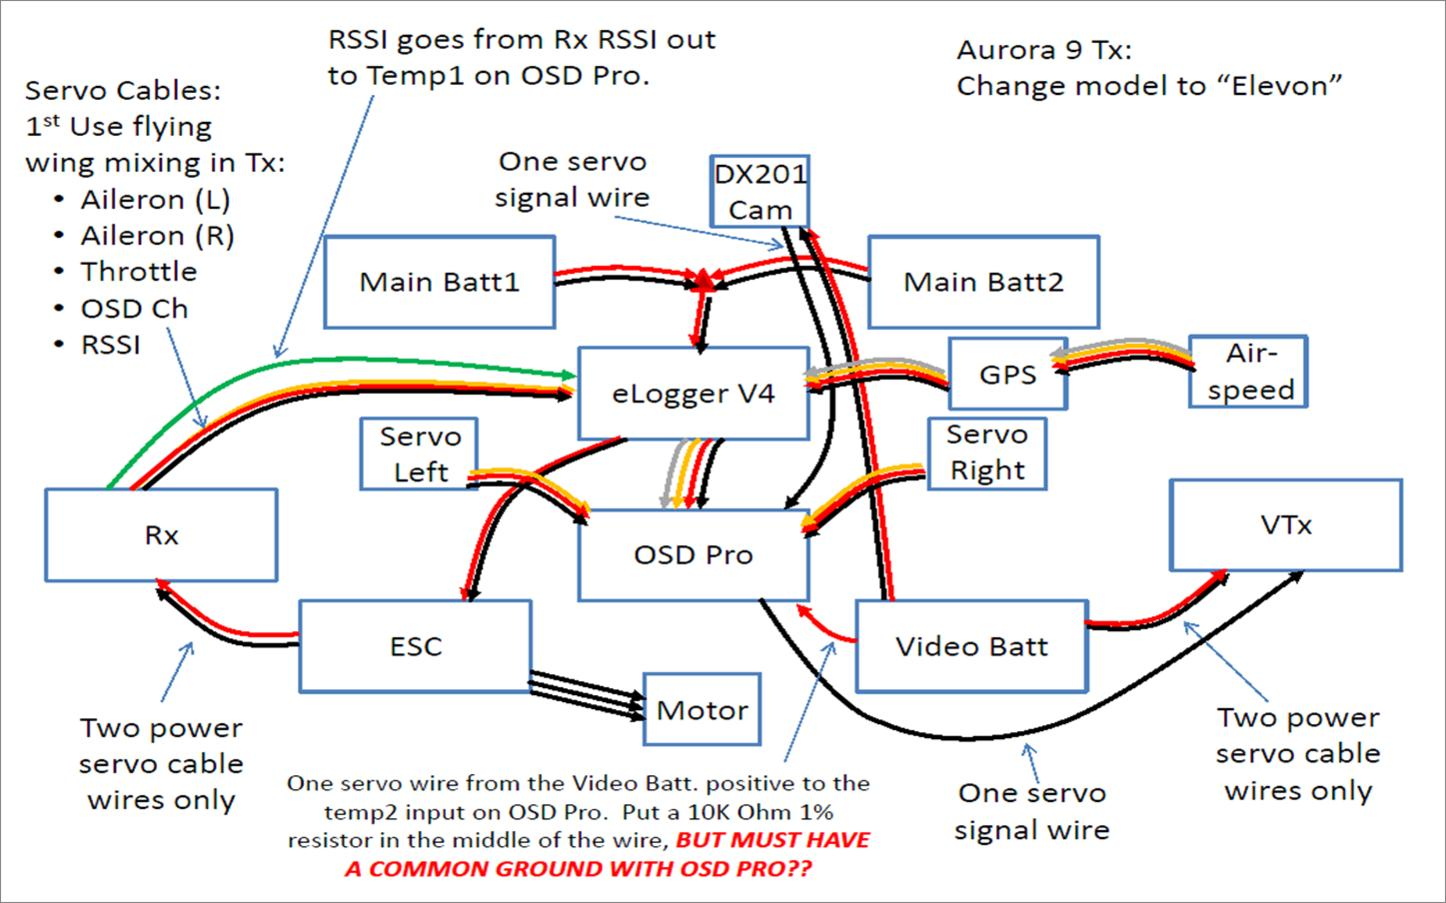 a3943686 53 OSD Pro Wiring Diagram In Progress?d=1302894340 attachment browser osd pro wiring diagram in progress jpg by eagle tree osd pro wiring diagram at highcare.asia